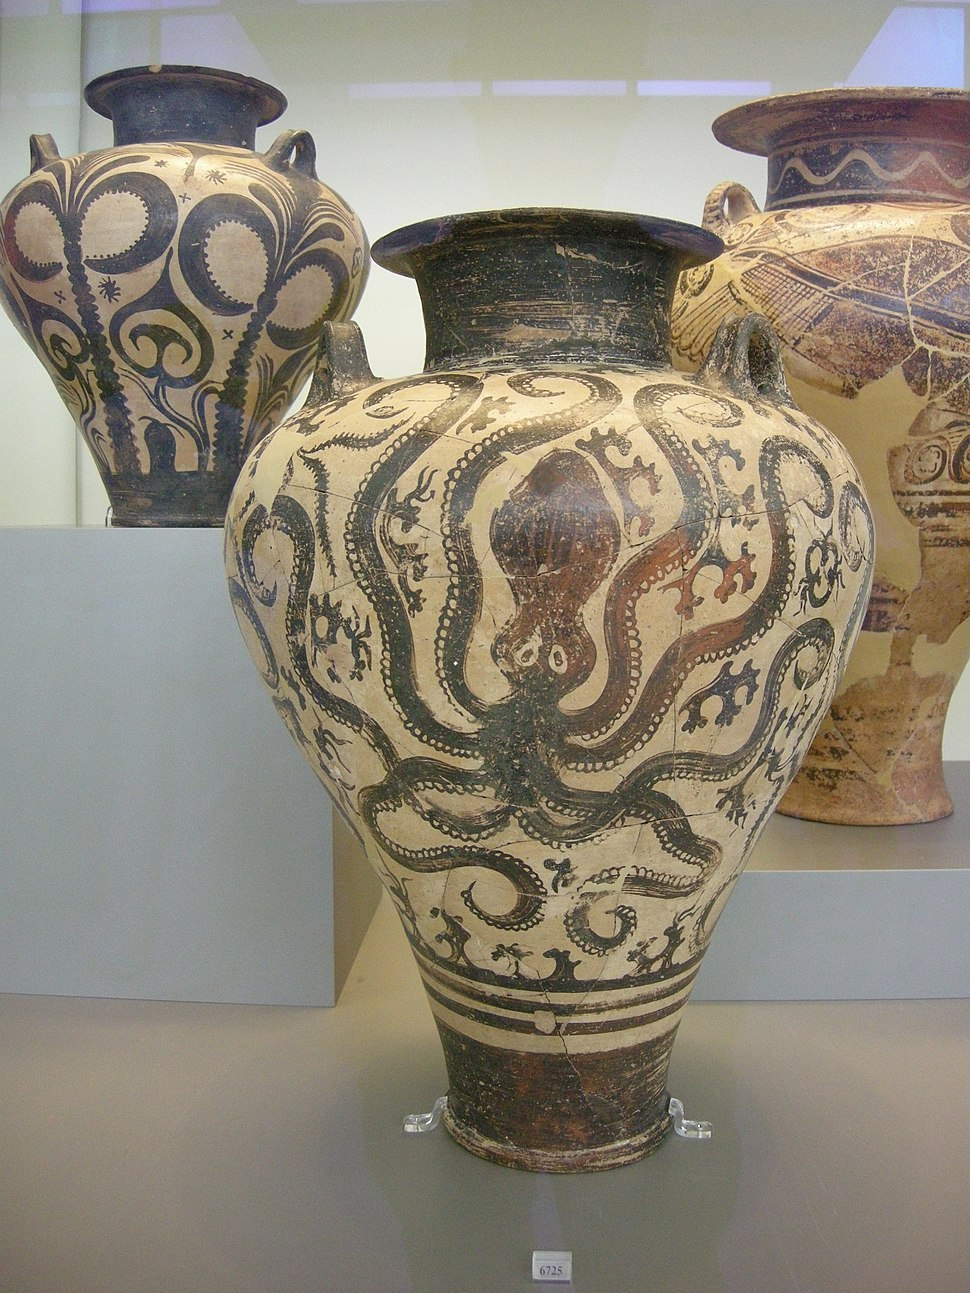 Mycenaean palace amphora, found in the Argolid, in the National Archaeological Museum in Athens